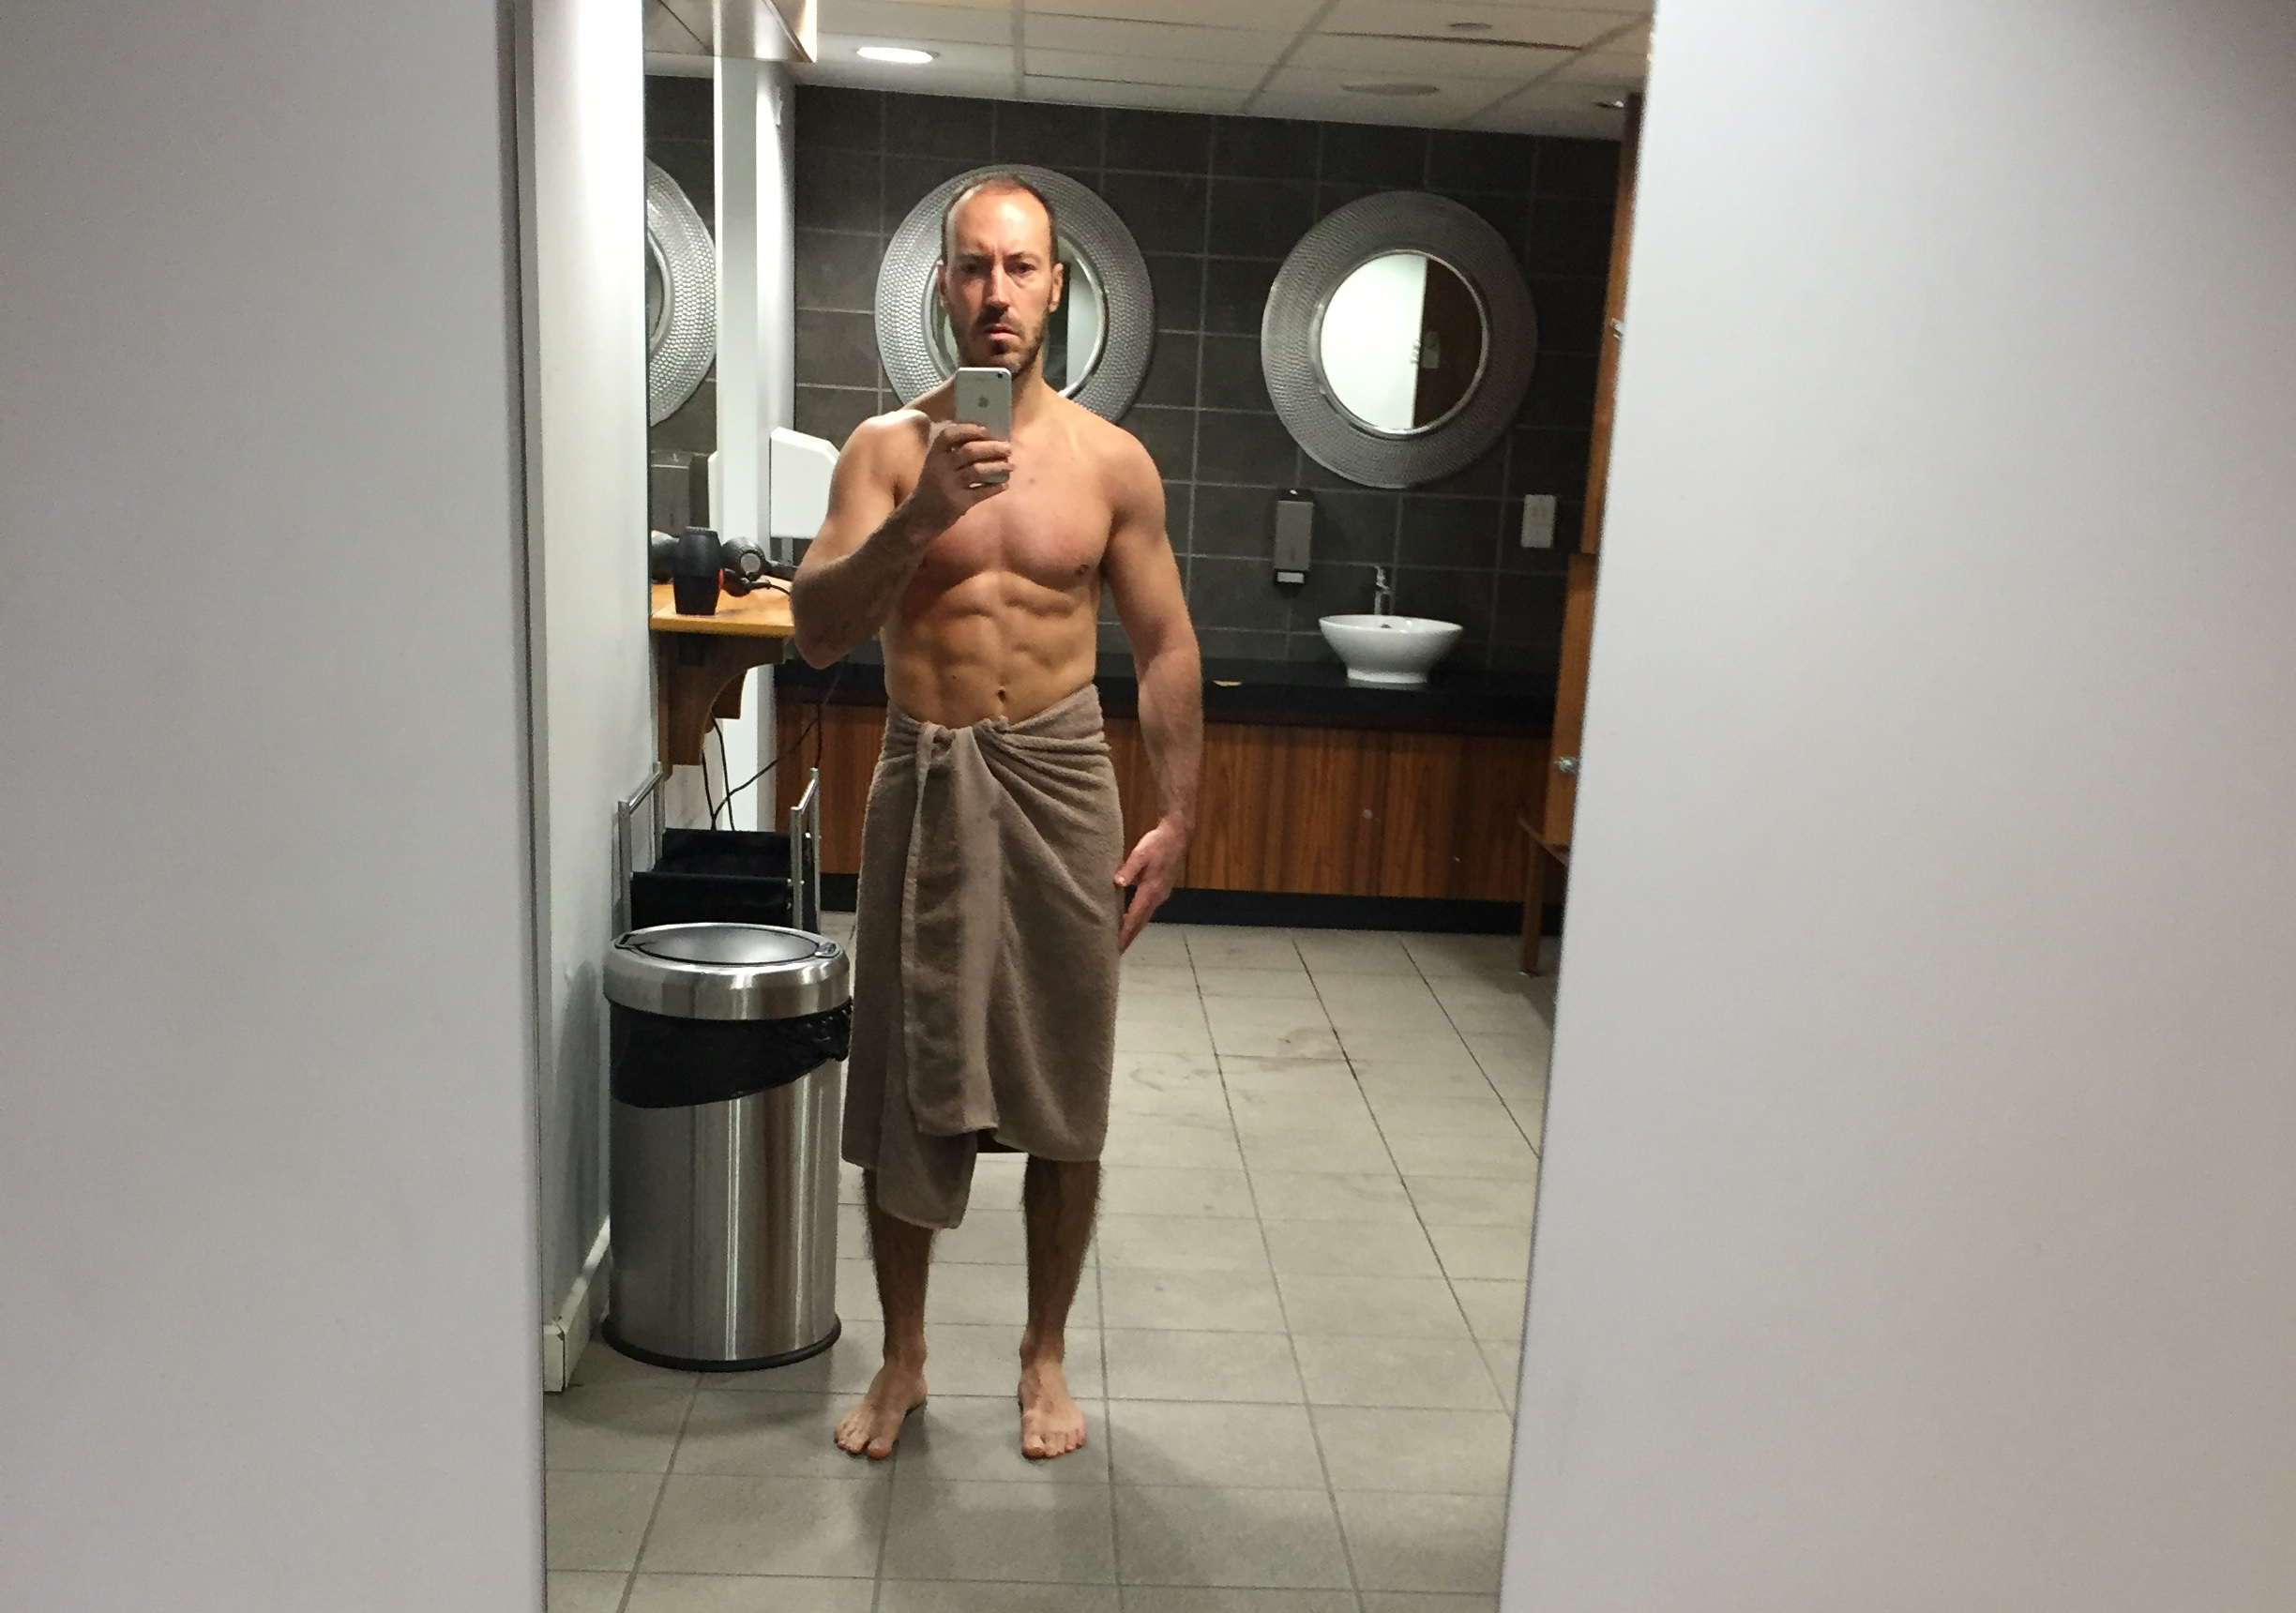 This 43-year-old got ripped in 8 weeks with 'German Body Composition